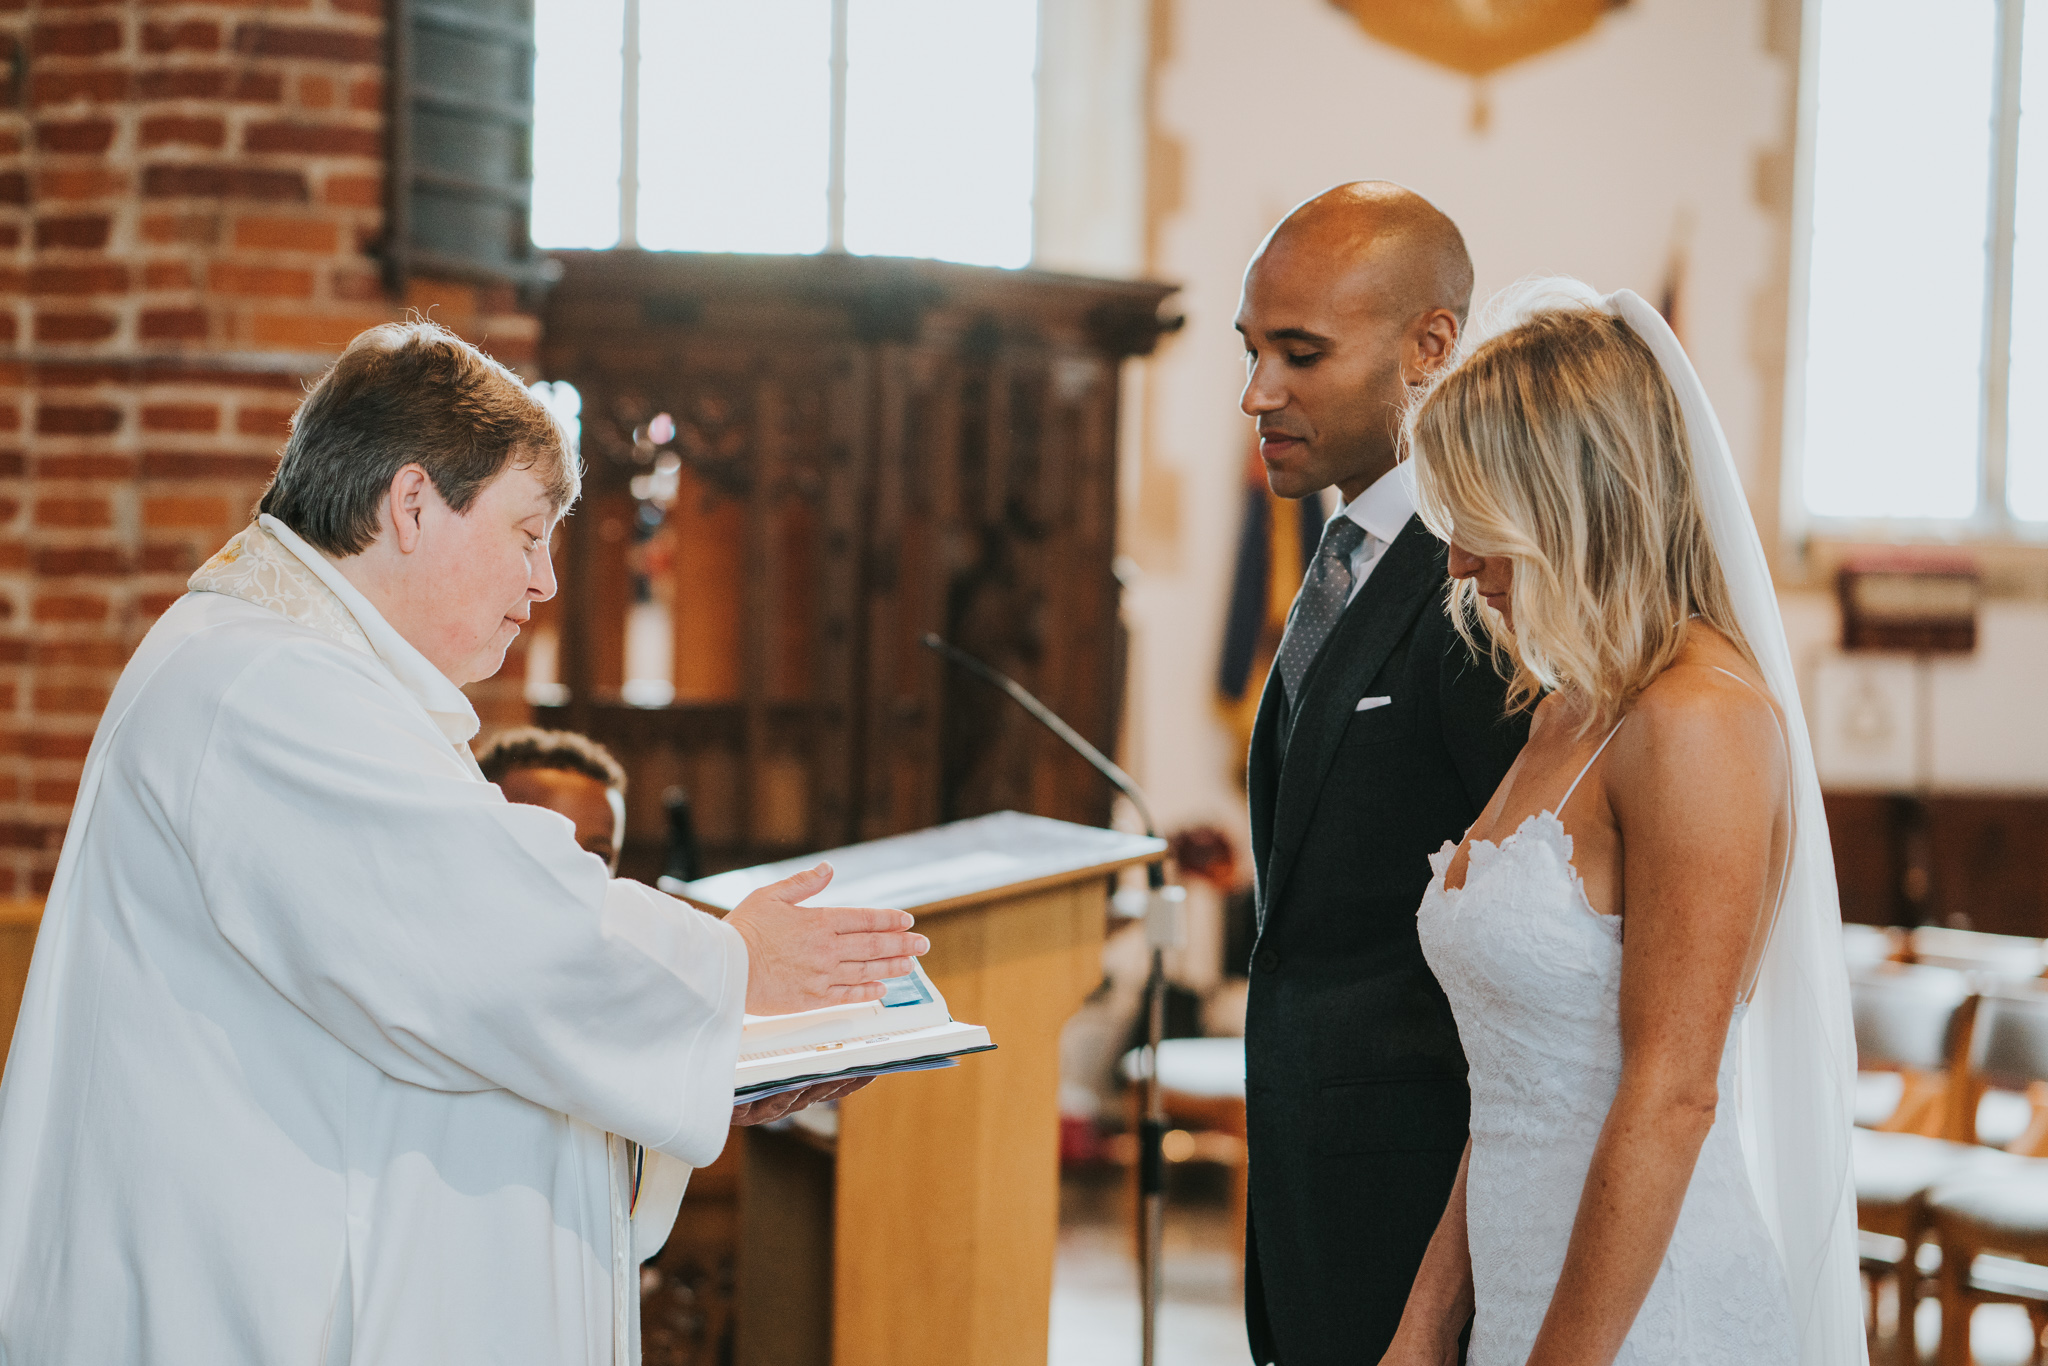 intimate-english-church-wedding-sarah-alex-colchester-essex-grace-elizabeth-colchester-essex-alternative-wedding-lifestyle-photographer-essex-suffolk-norfolk-devon (47 of 92).jpg